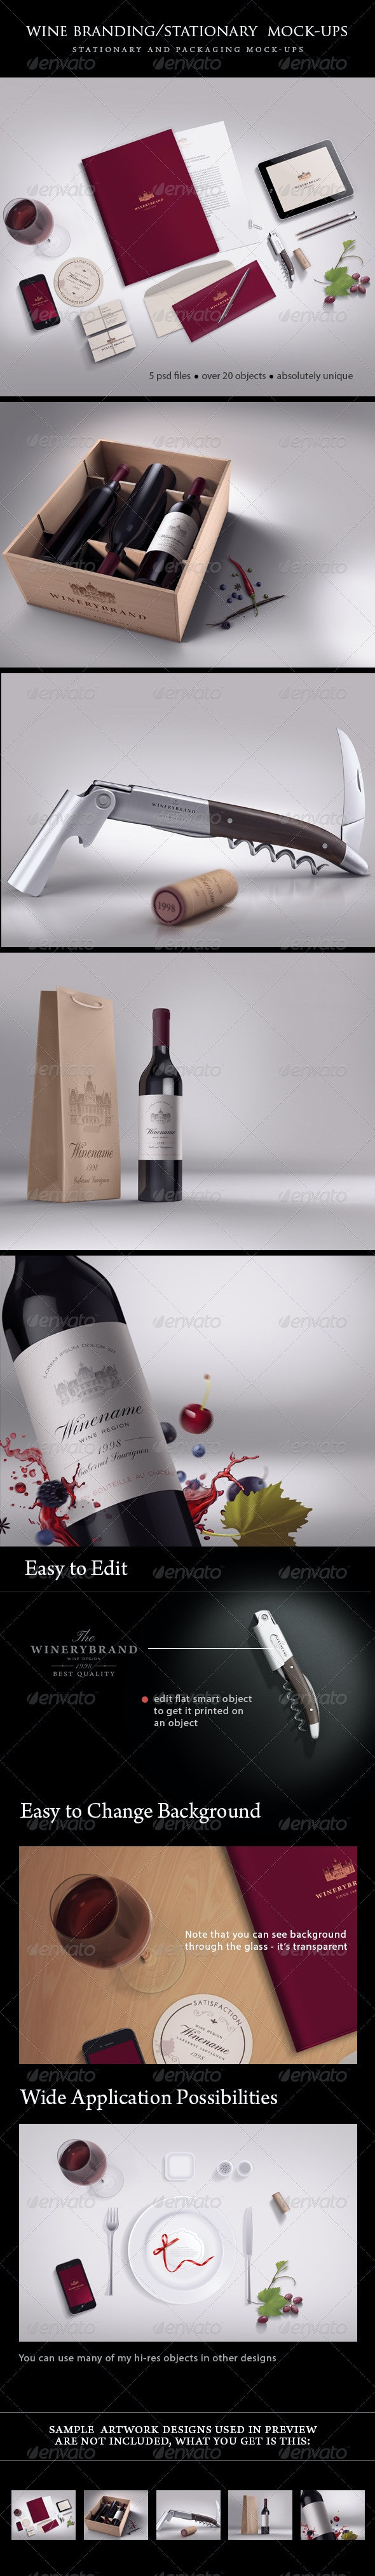 Wine Branding / Stationary Mock-ups Bundle - Stationery Print